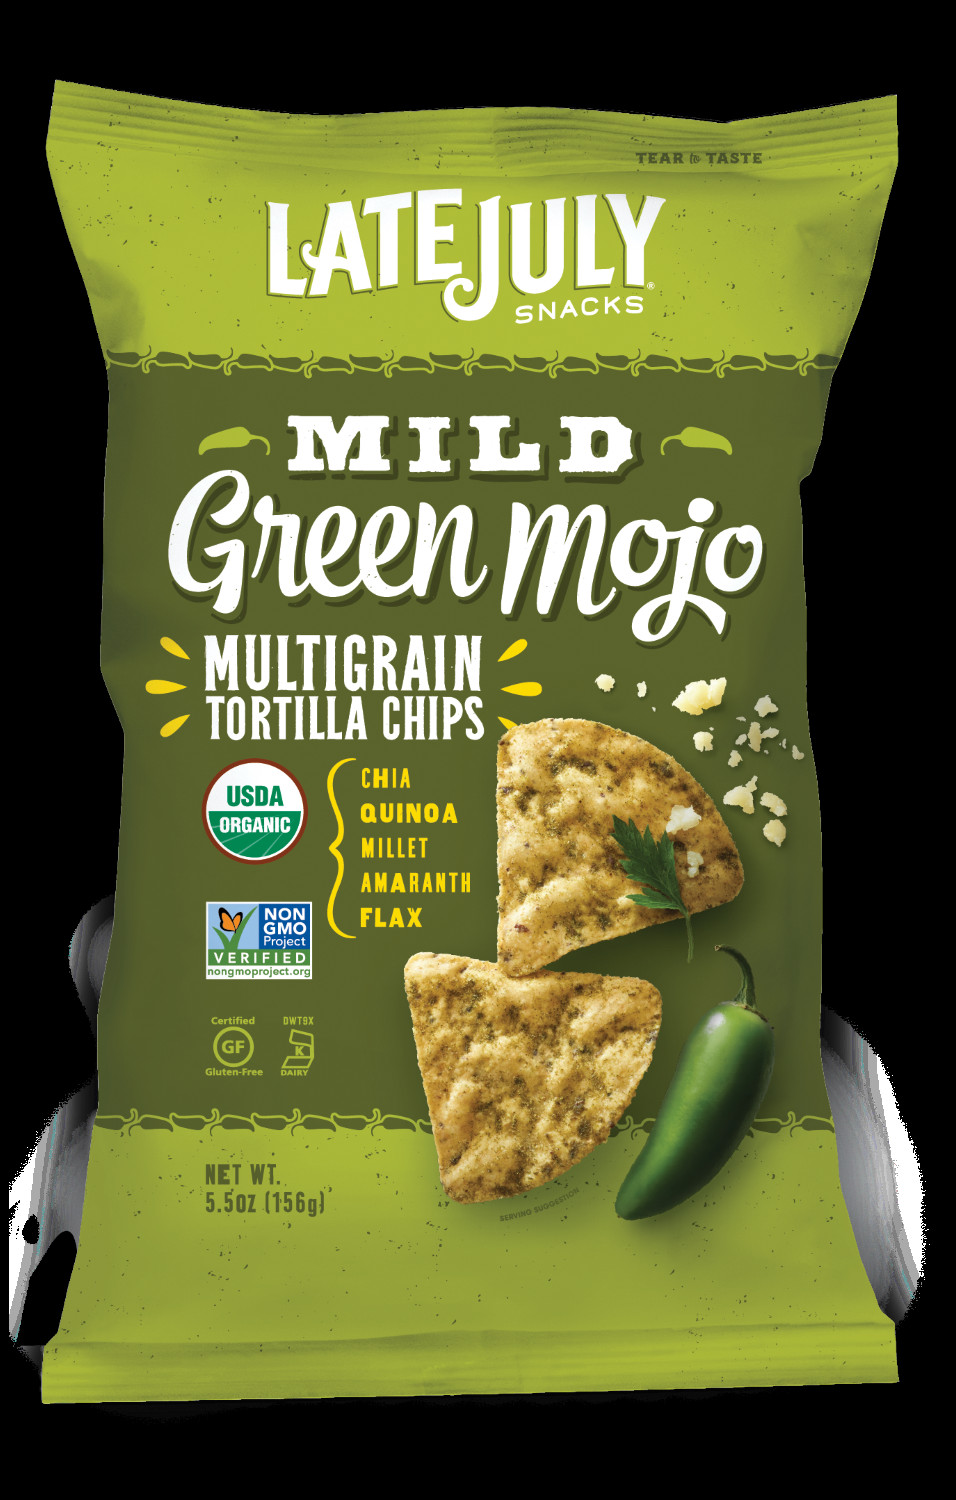 Late July Crackers  Late July Snacks Mild Green Mojo Multigrain Tortilla